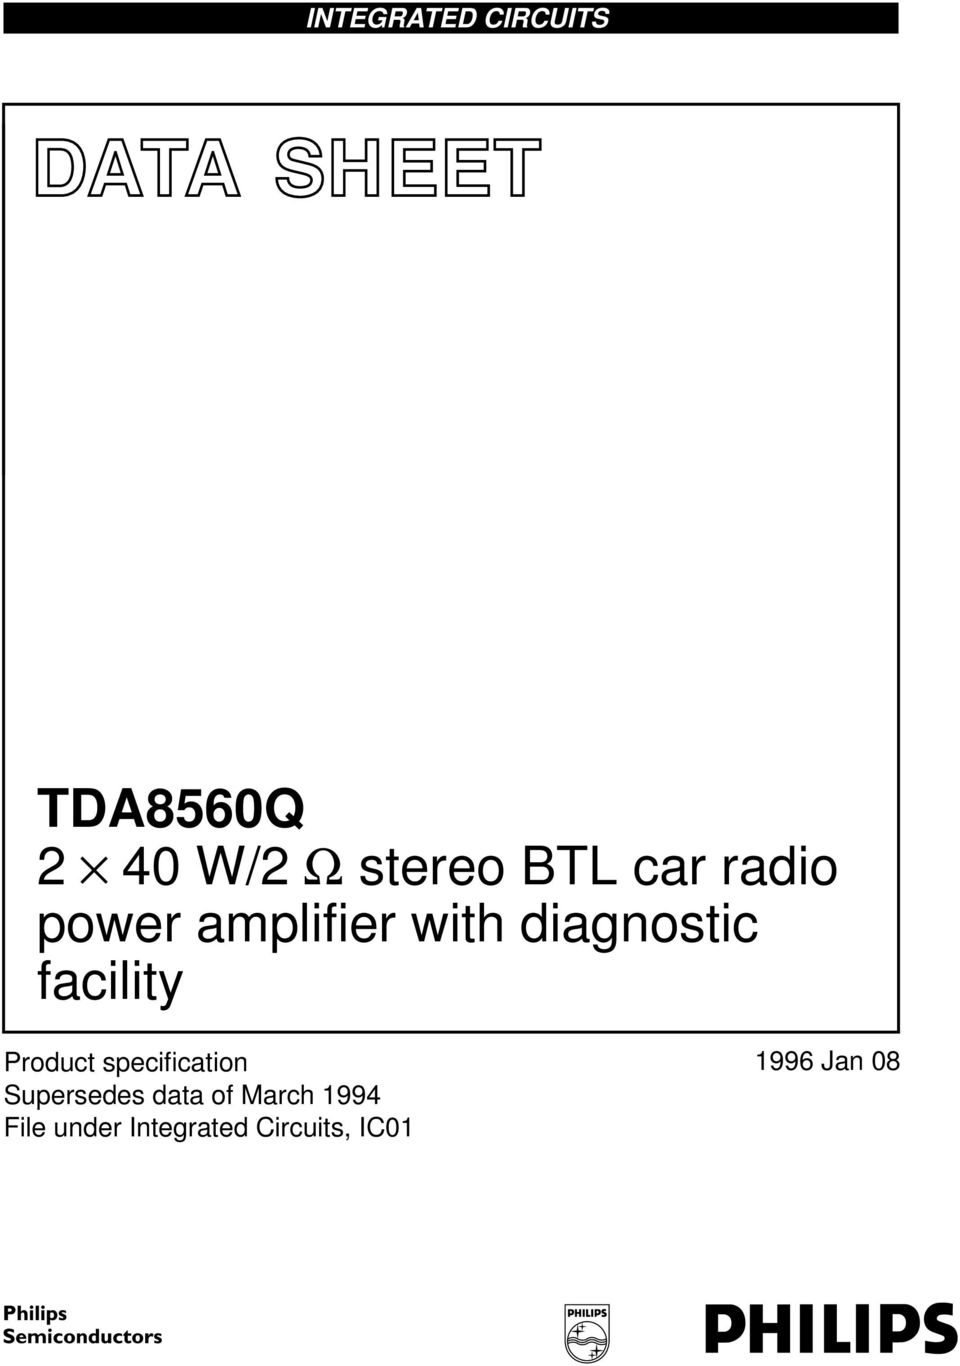 Data Sheet Tda8560q 2 40 W Stereo Btl Car Radio Power Amplifier Tda2002 8w Supersedes Of March 1994 File